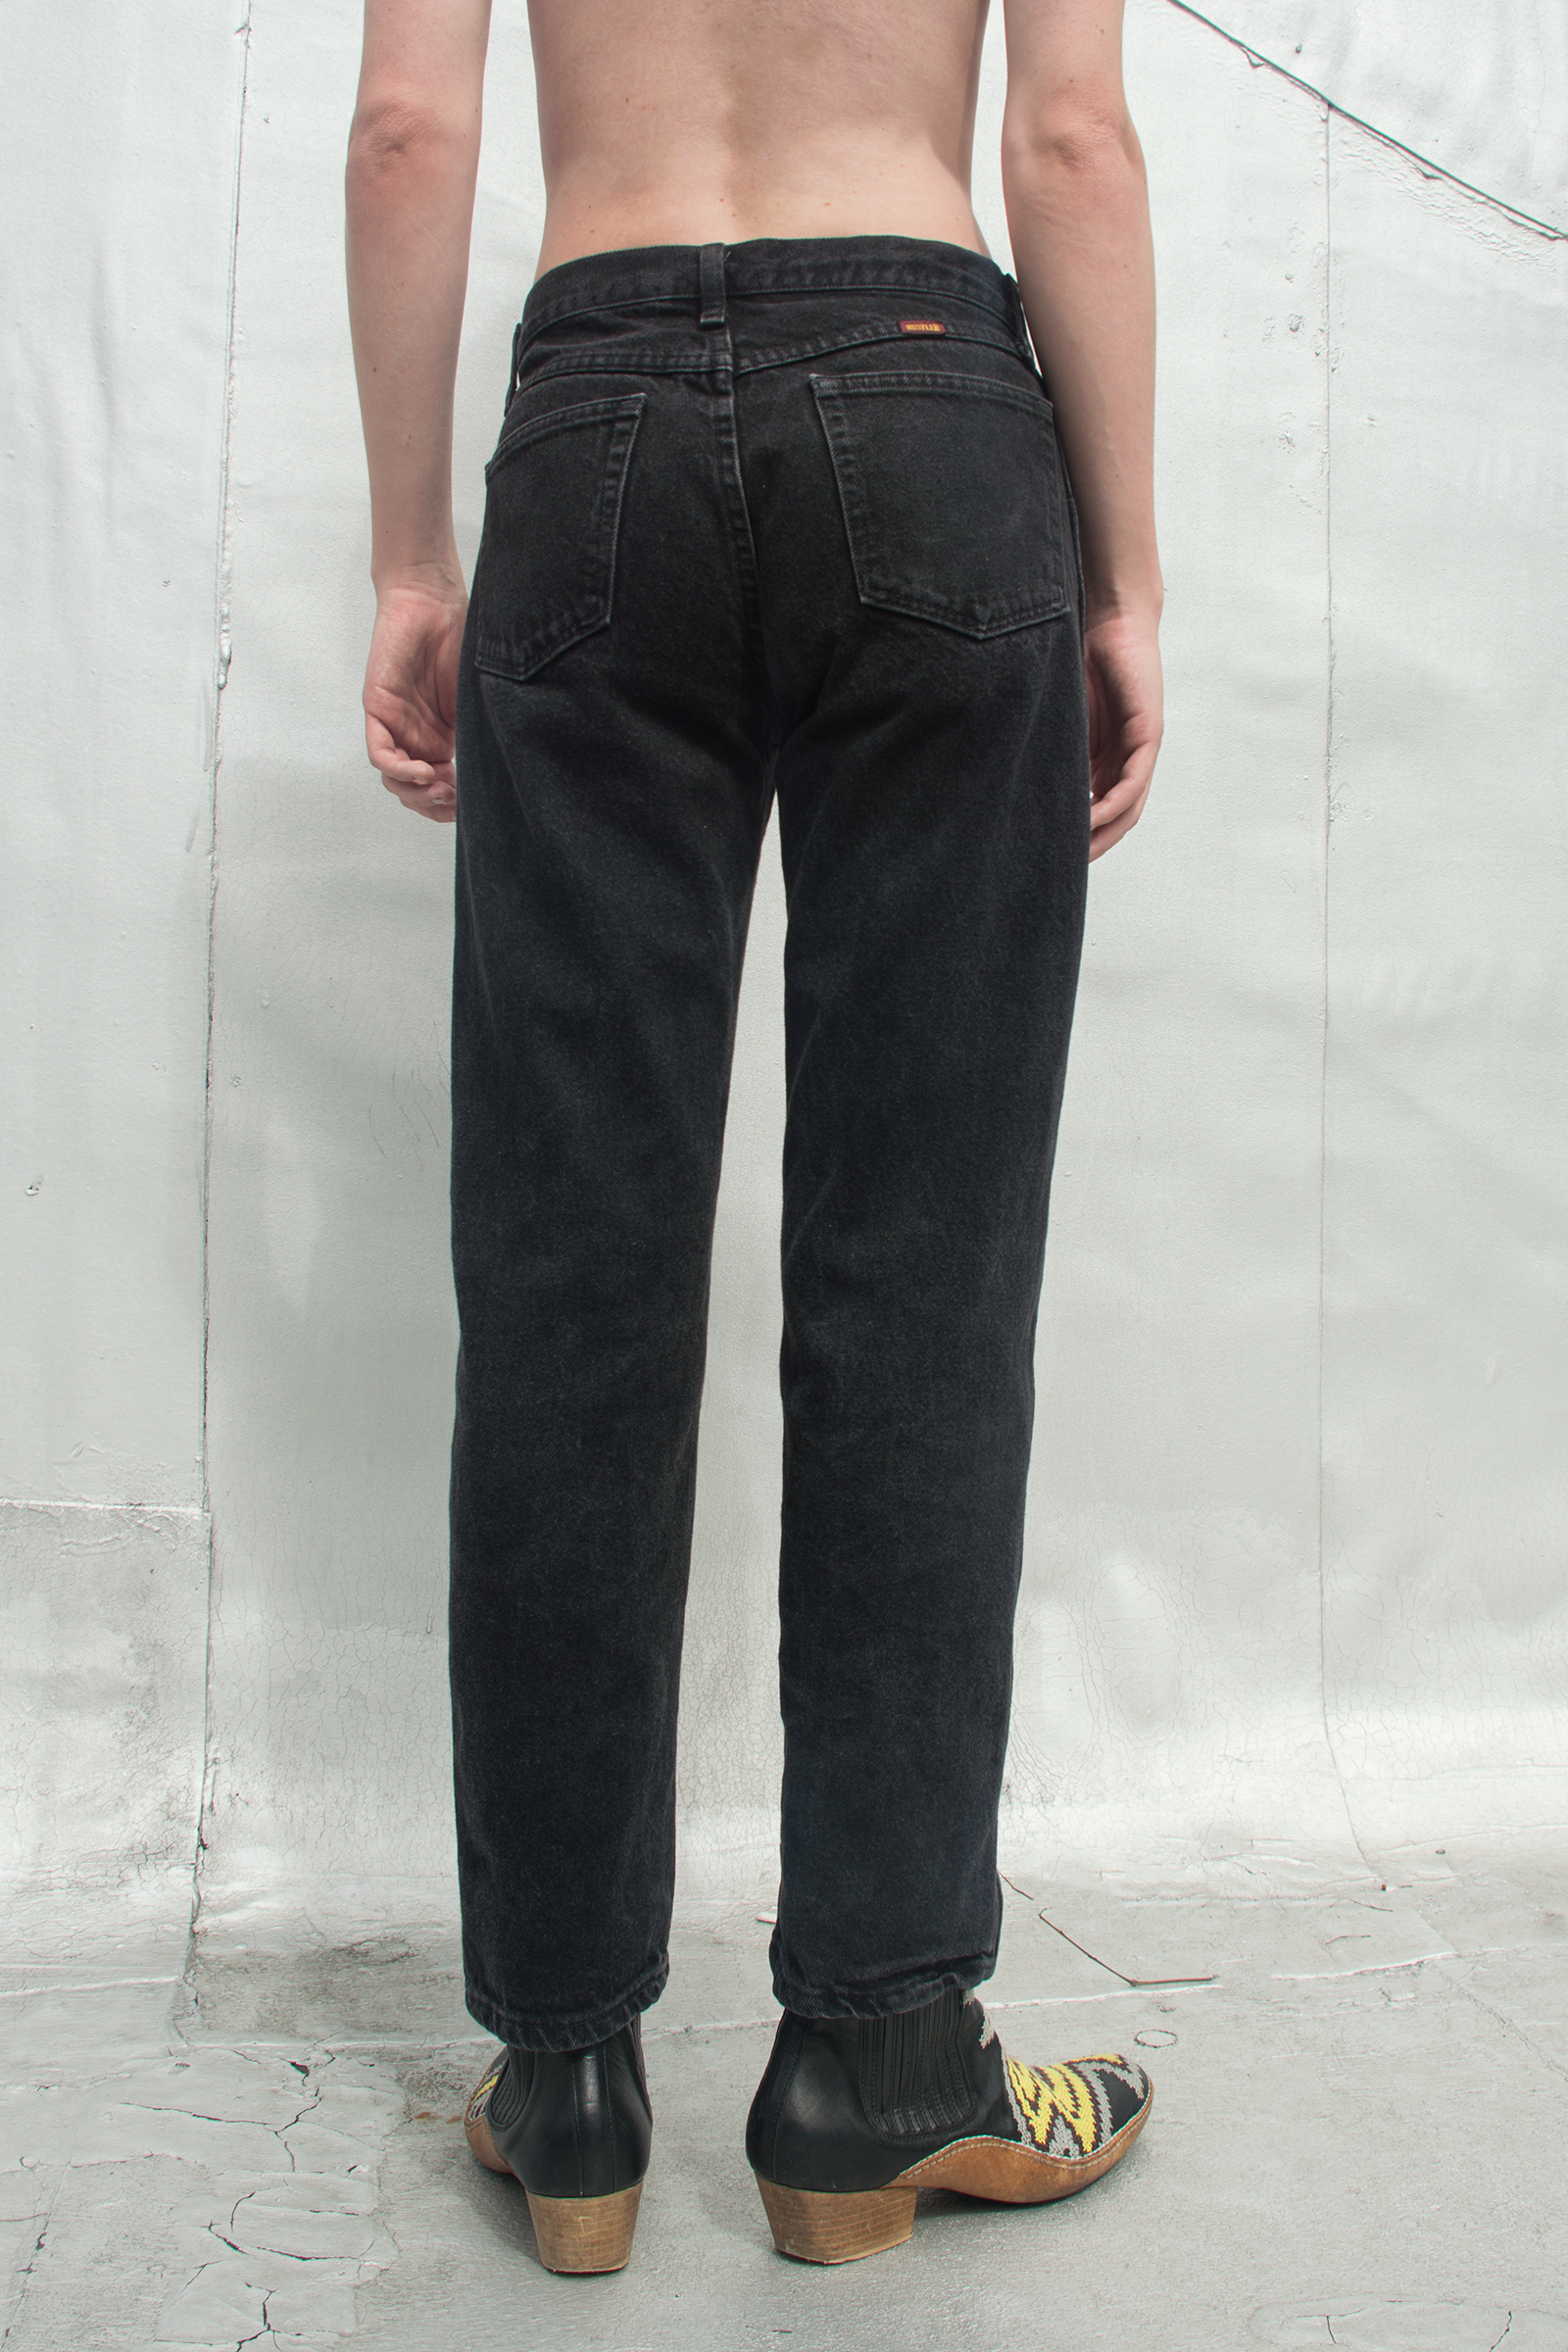 vintage black denim